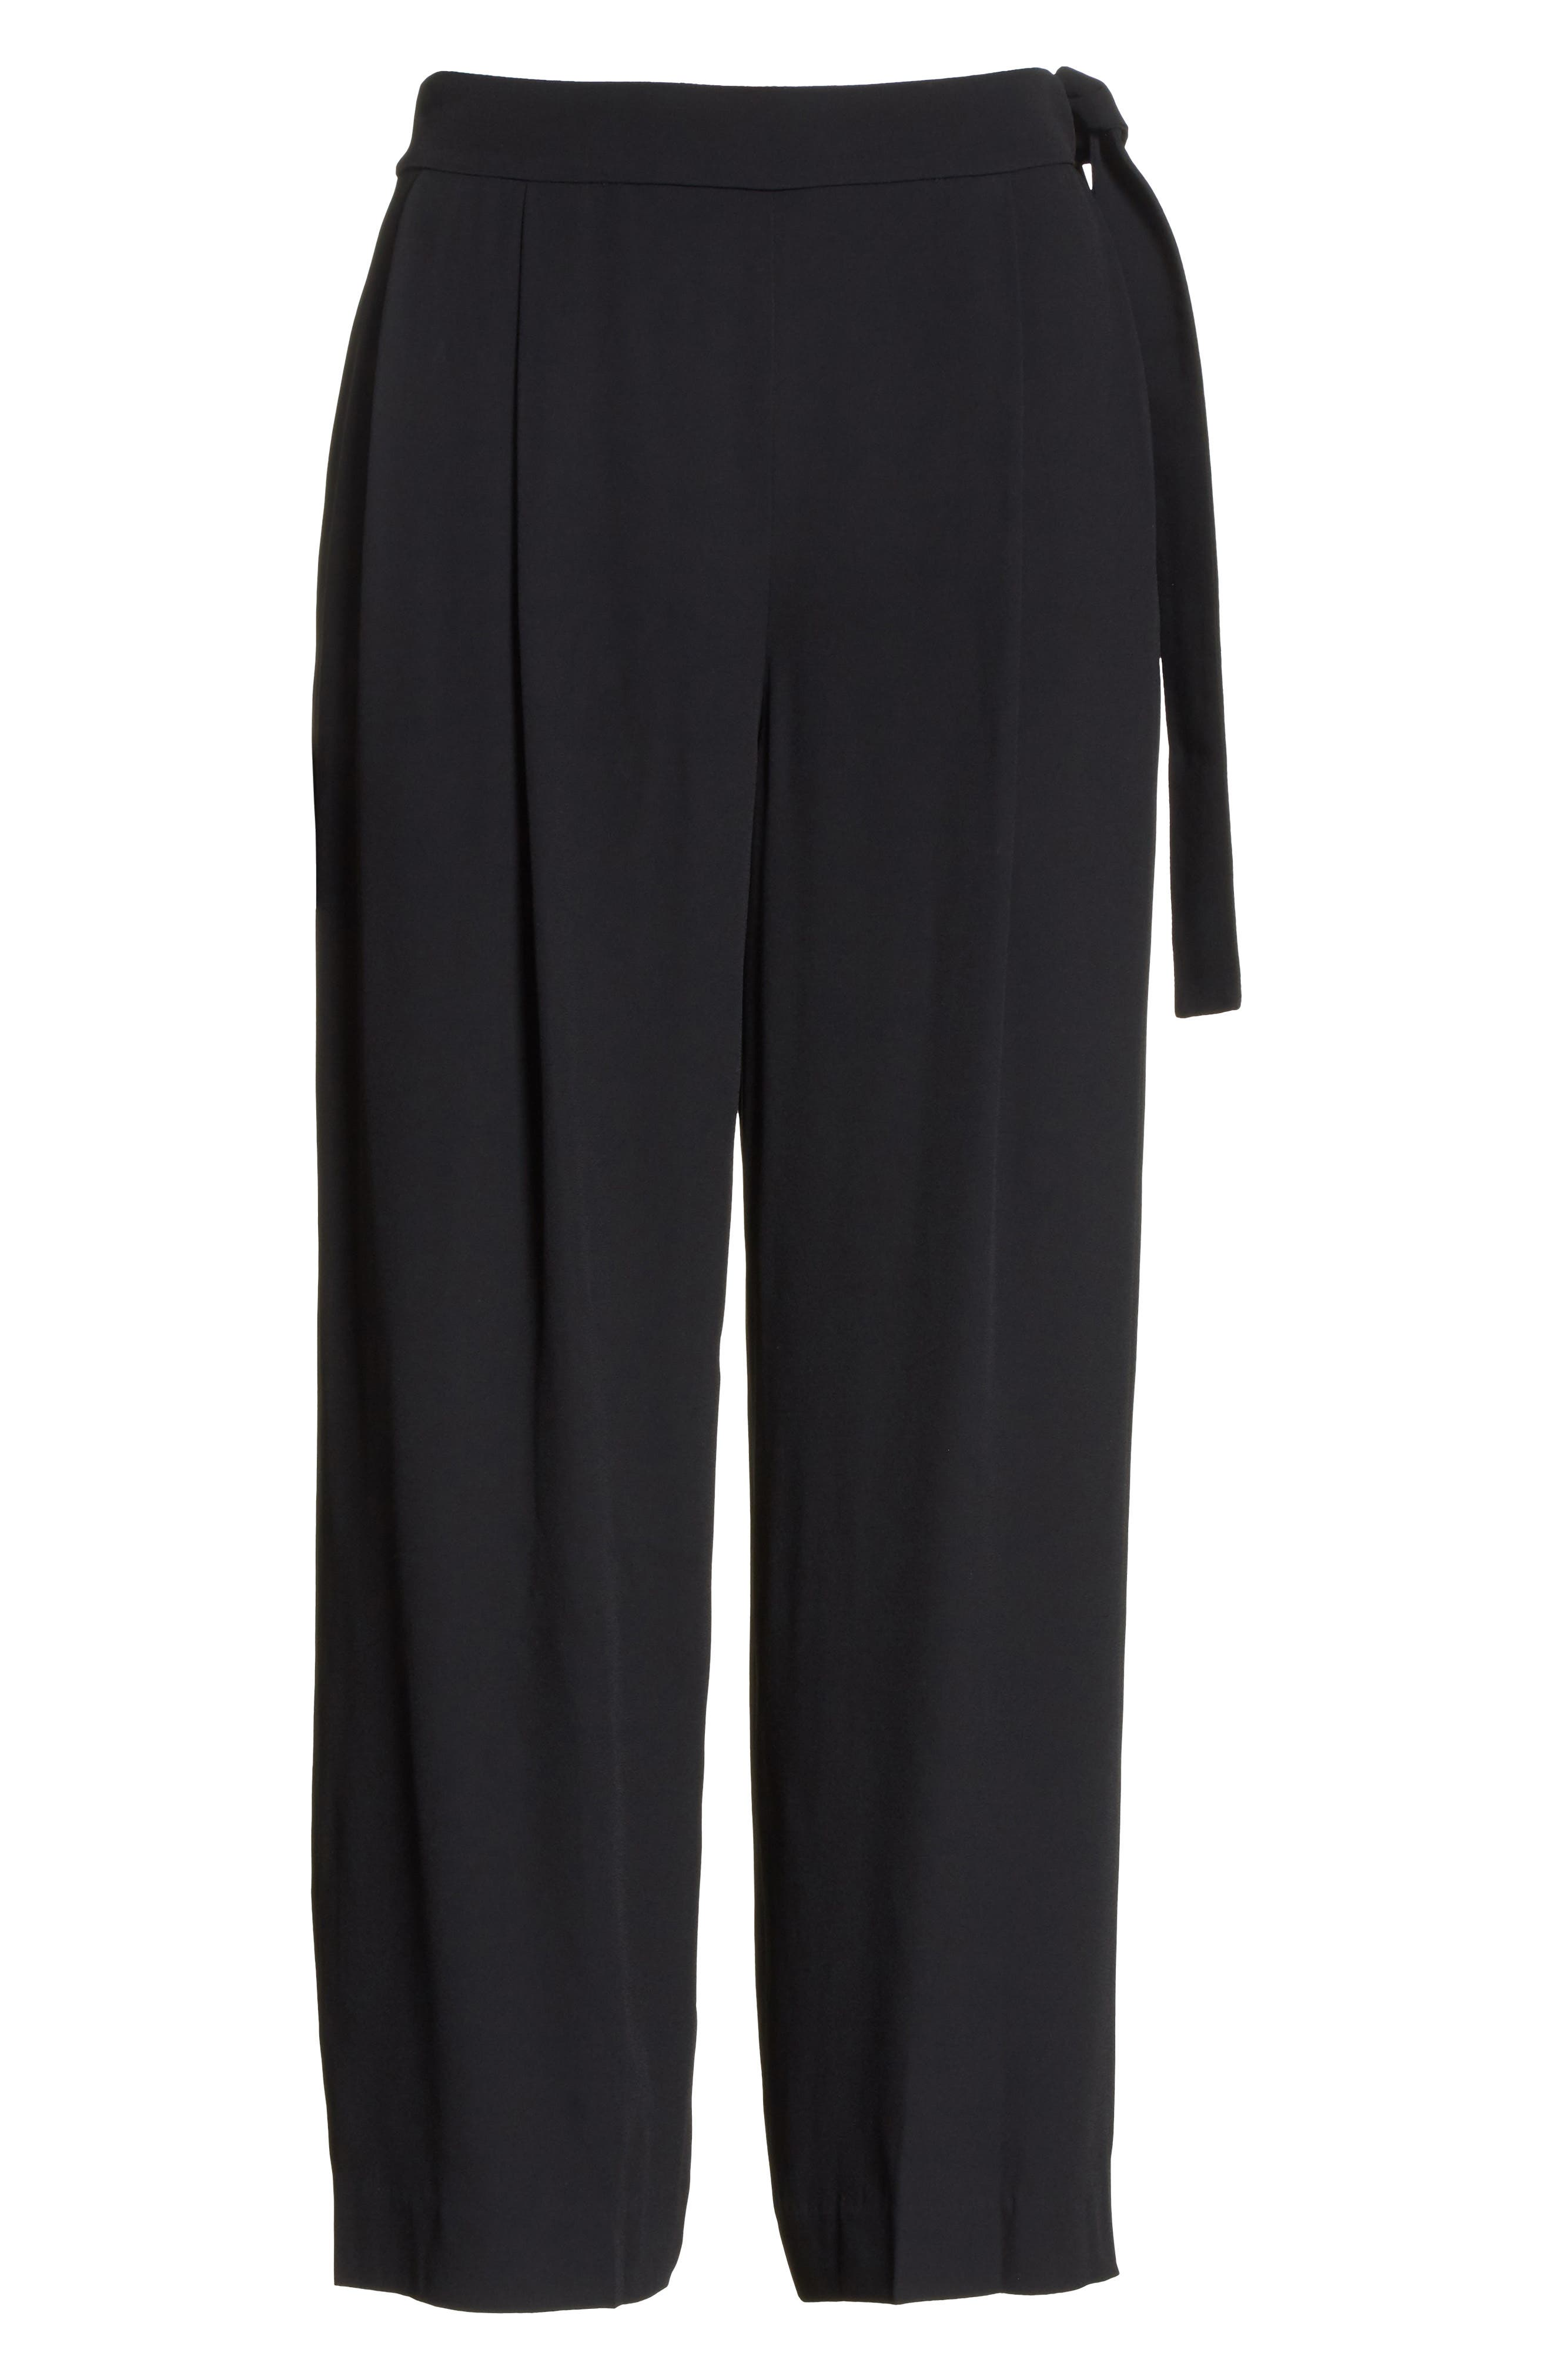 Belted Culottes,                             Alternate thumbnail 6, color,                             001